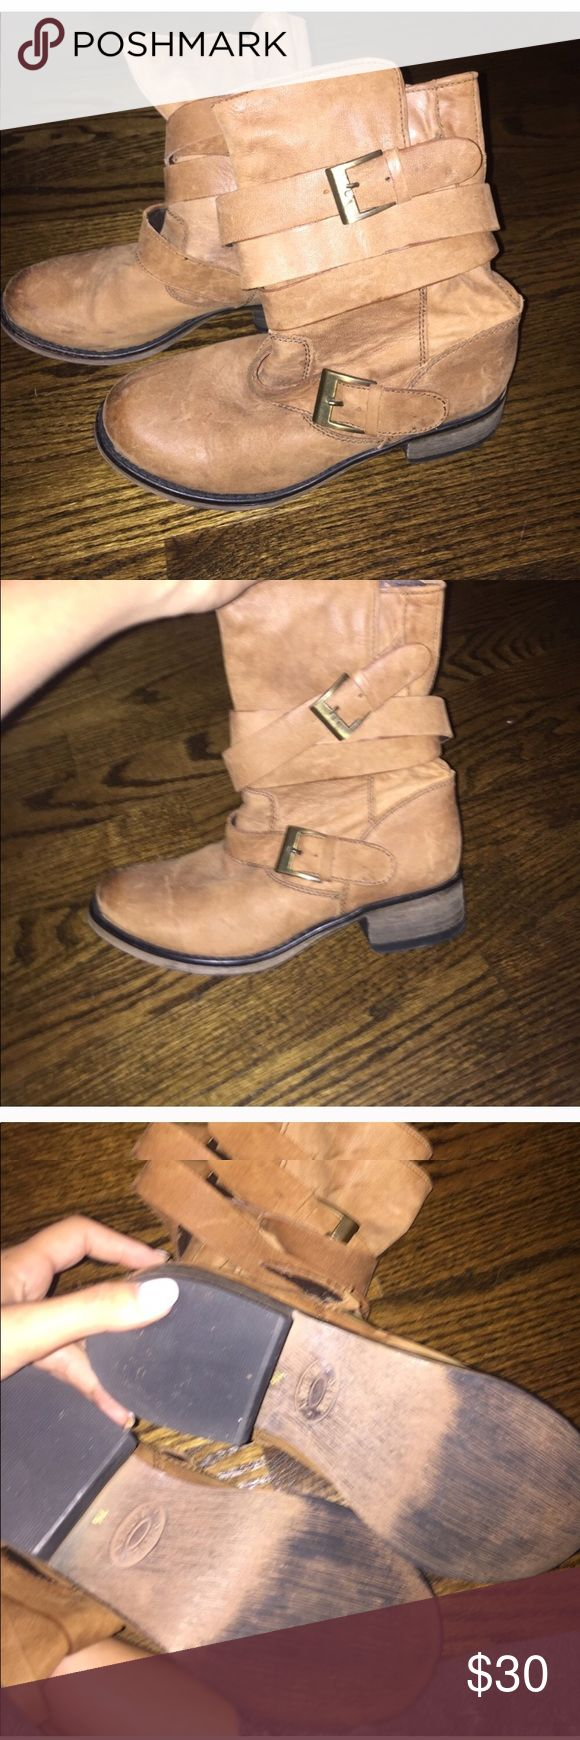 Steve Madden tan boots Worn a few times, as u can see in pics. Size 7.5. Super cute with skinny jeans. Go up to calf Steve Madden Shoes Ankle Boots & Booties